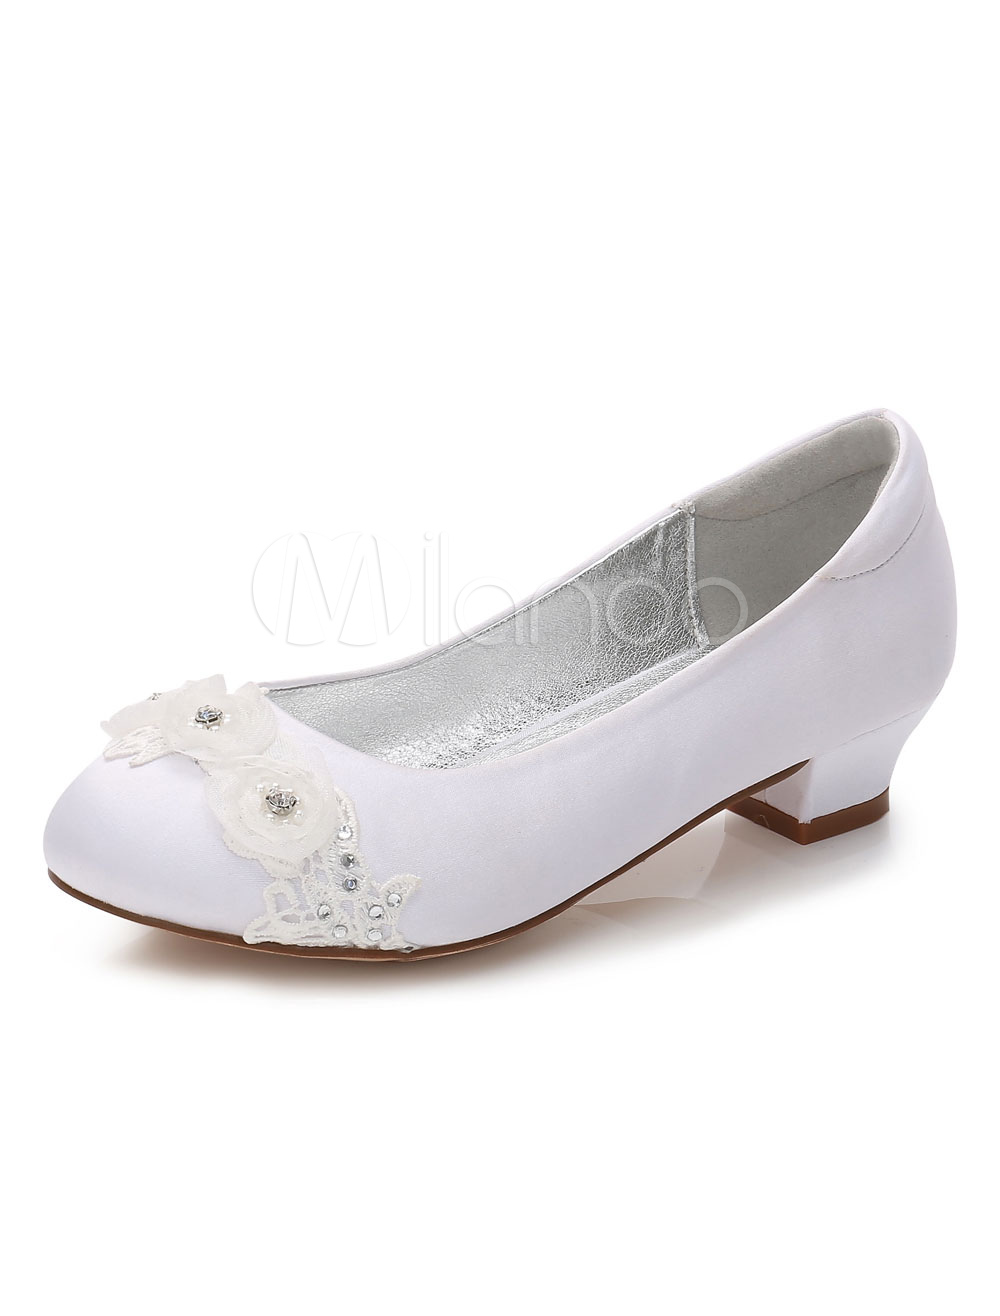 White Flower Girls Shoes Rhinestones Flowers Round Toe Chunky Heel Pumps